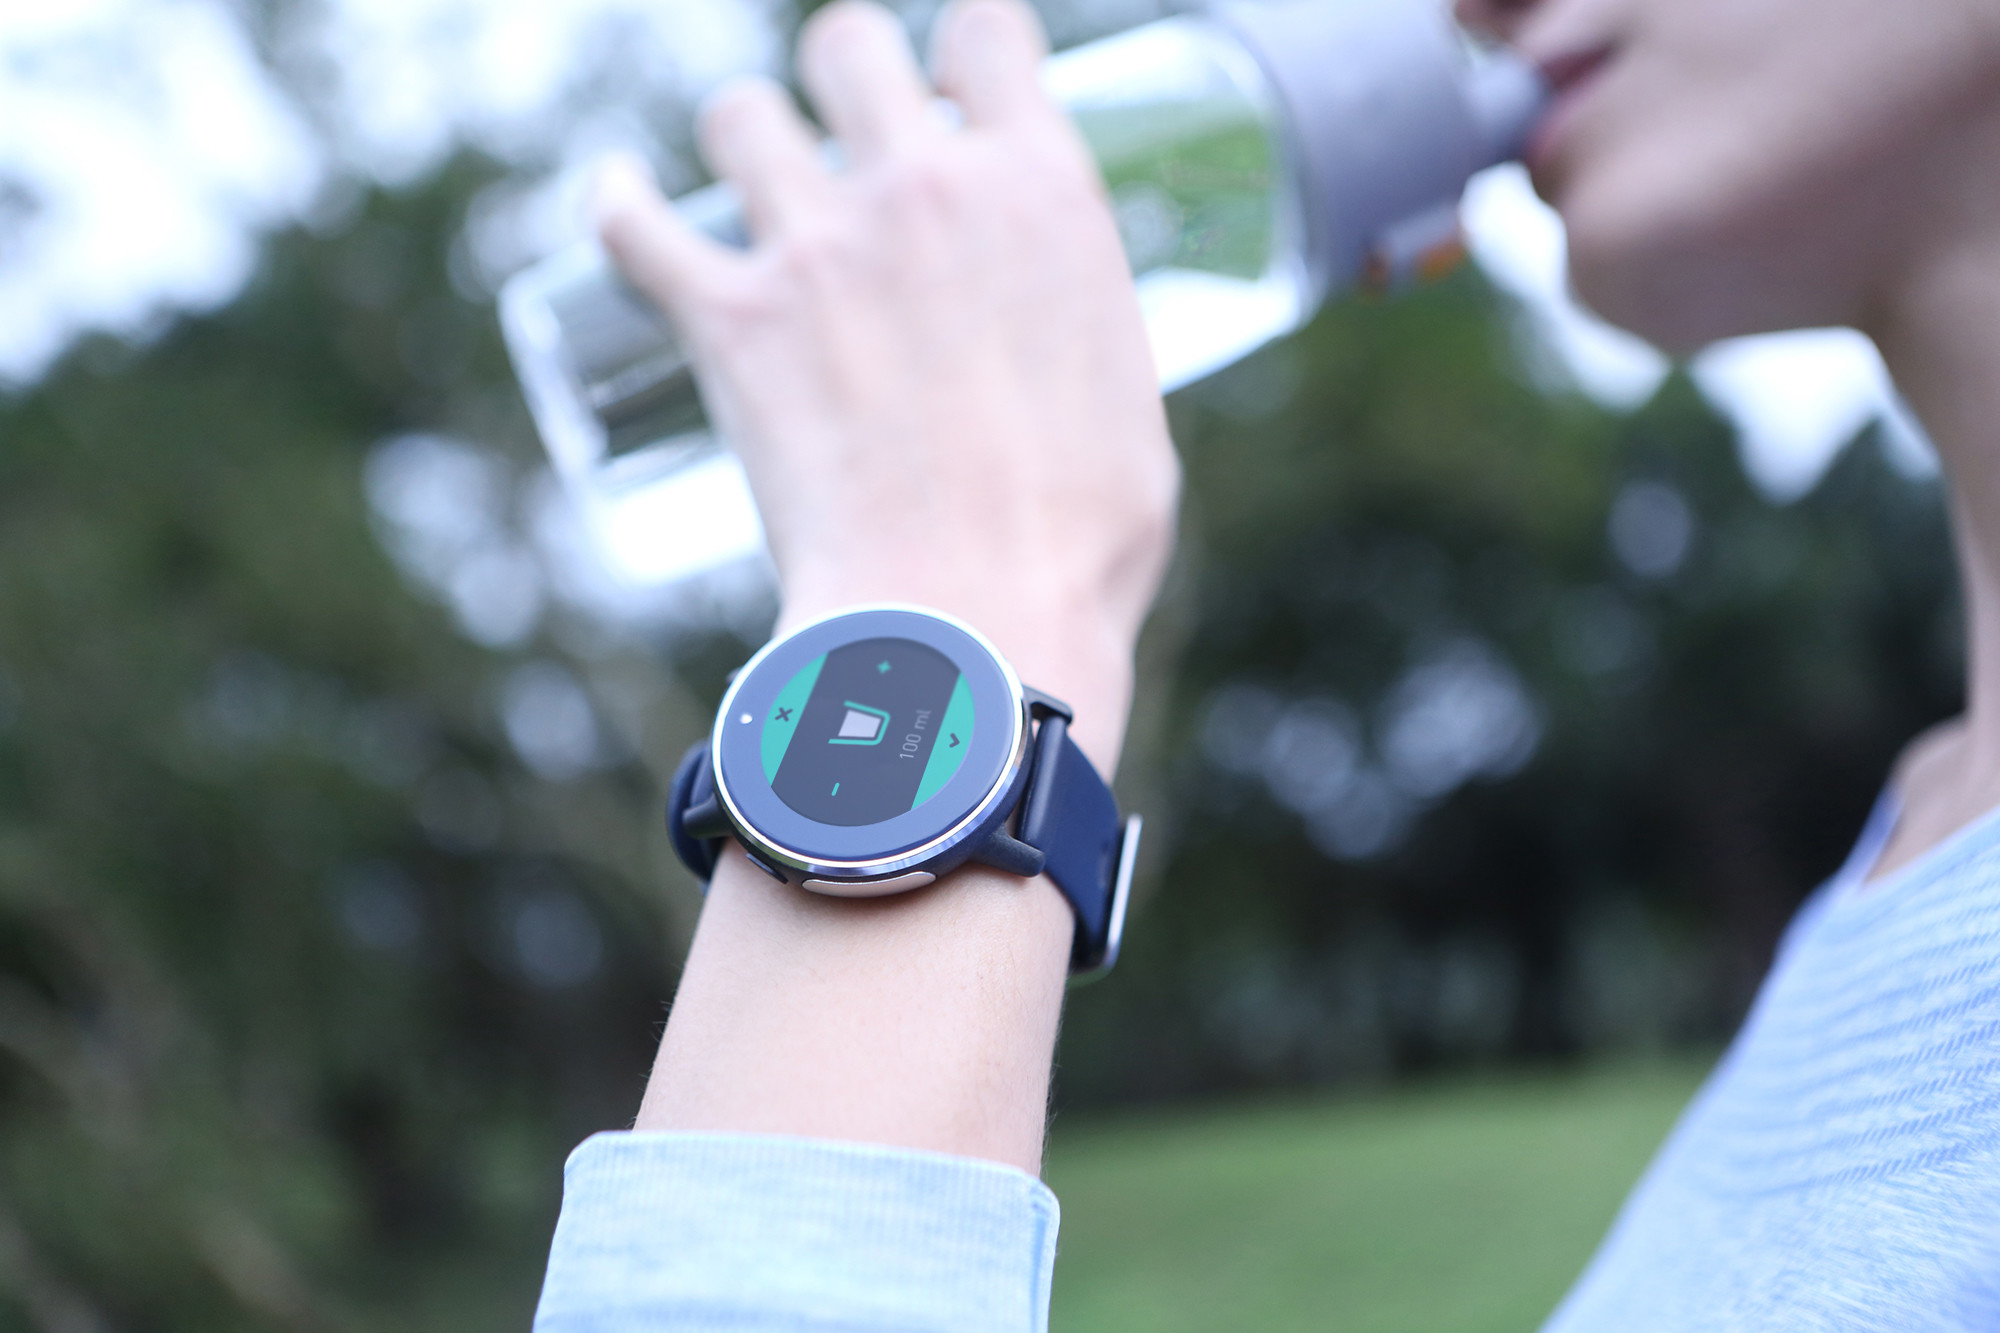 Acer is making yet another fitness wearable